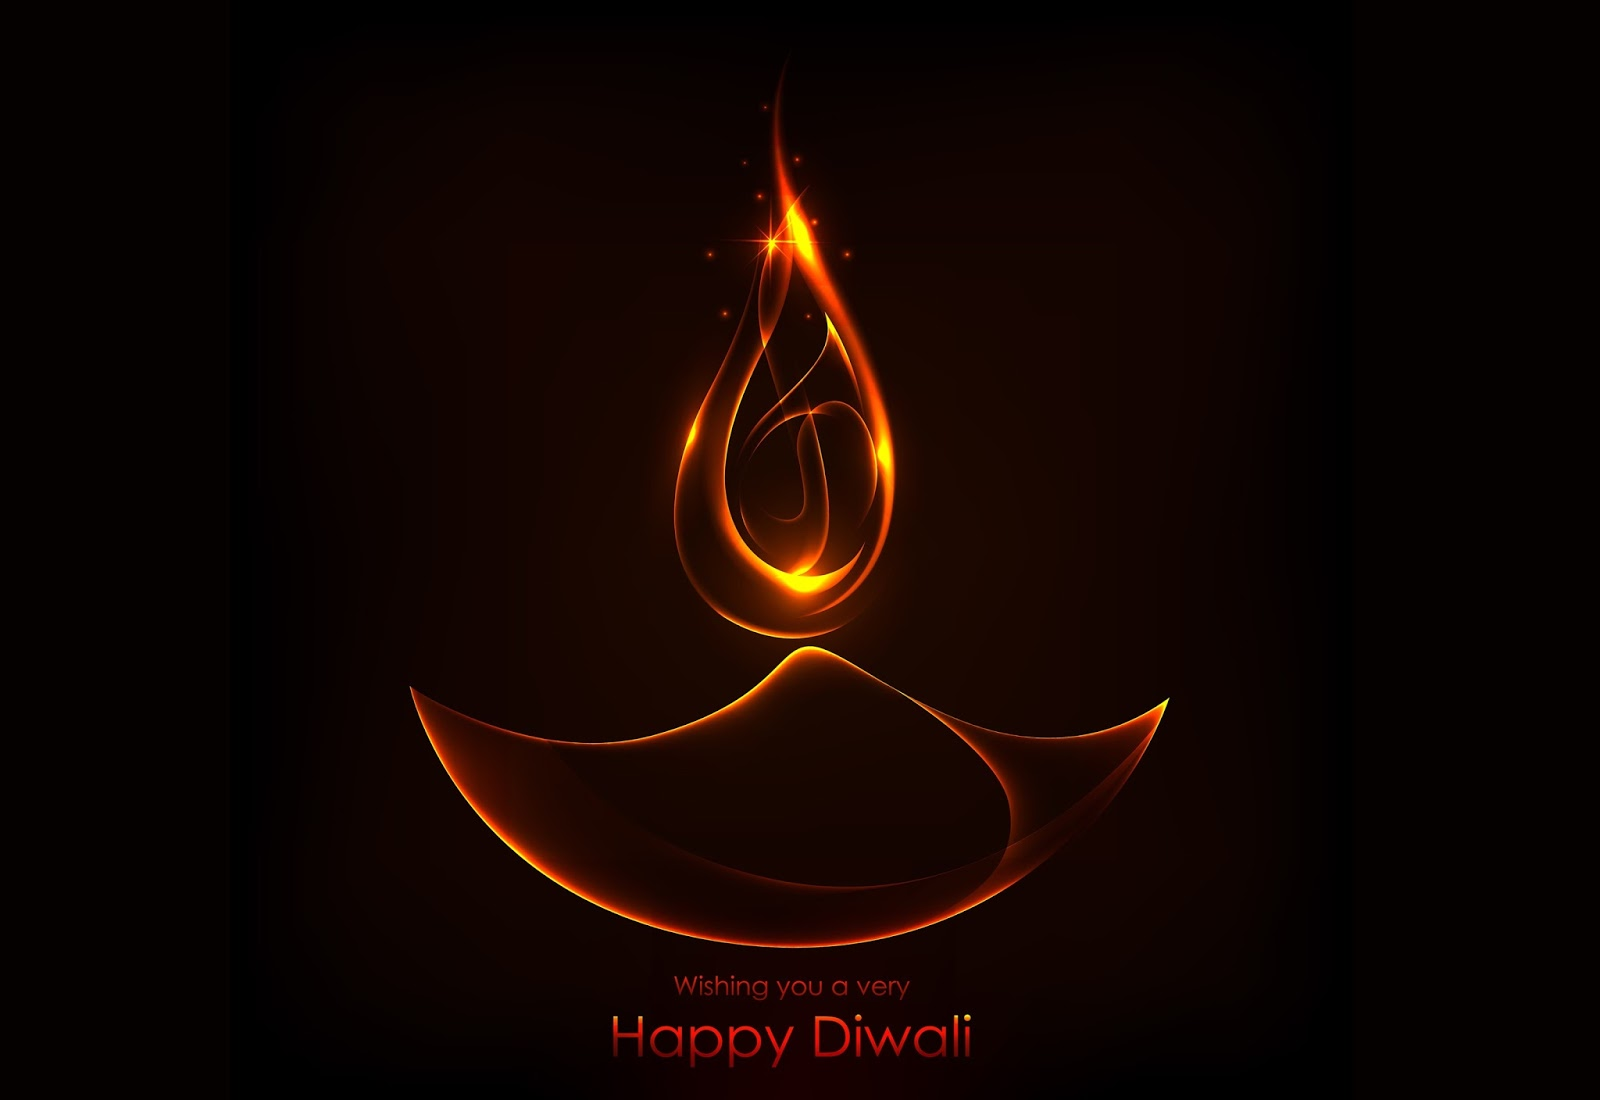 High Definition Diwali Wallpapers A Unique Wish: DIWALI PICTURES 2015: POLLUTION FREE ECO FRIENDLY DIWALI